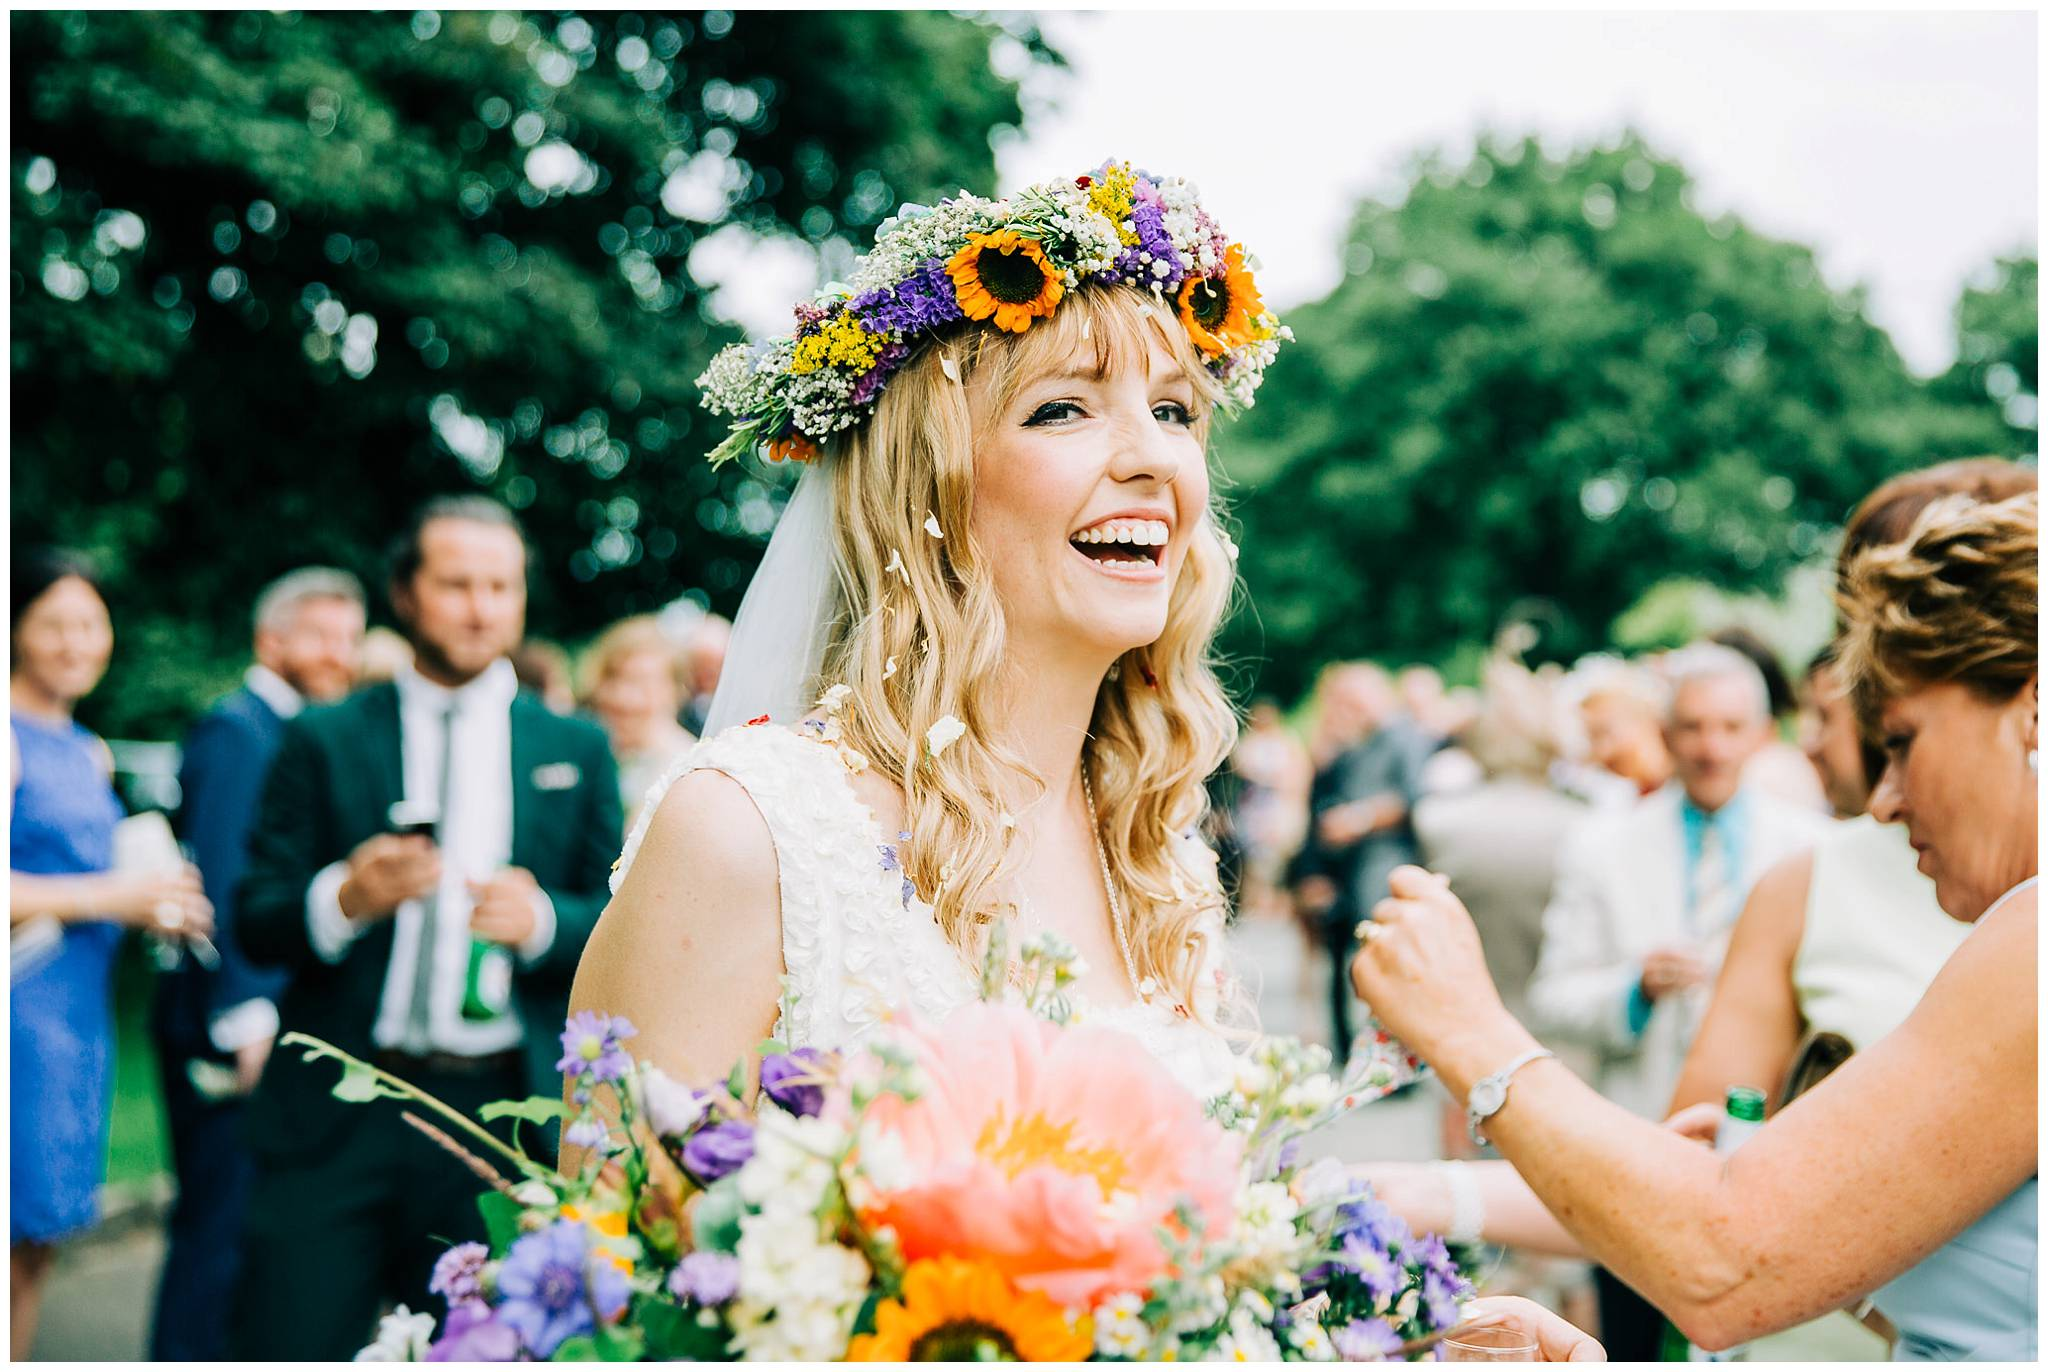 bride with beautiful natural smile wearing wild floral crown